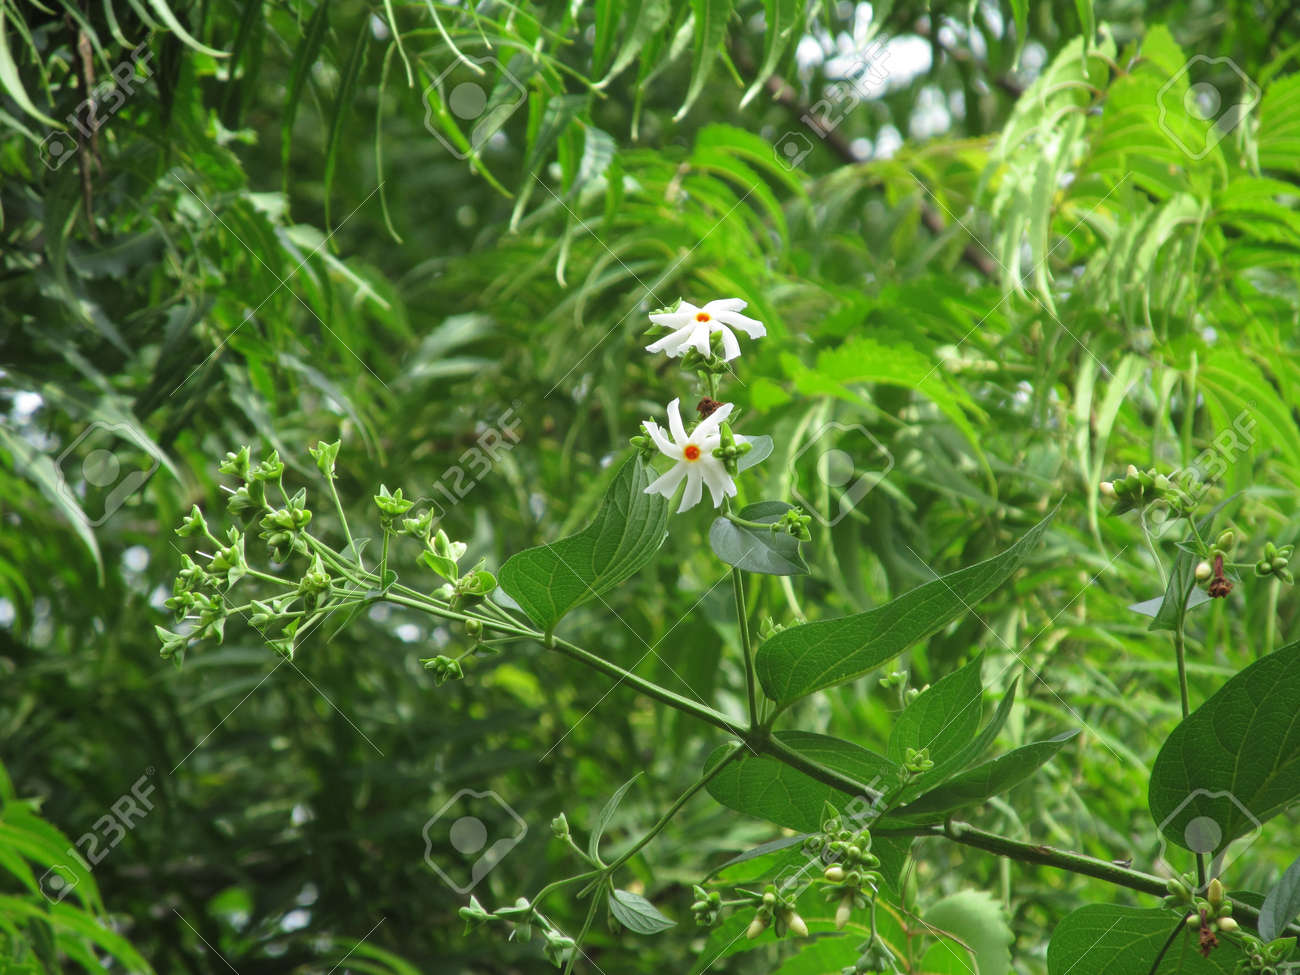 Two white harshingar night jasmine coral jasmine tree of sadness stock photo two white harshingar night jasmine coral jasmine tree of sadness seoli nyctanthes arbor tristis flower on tree in the garden izmirmasajfo